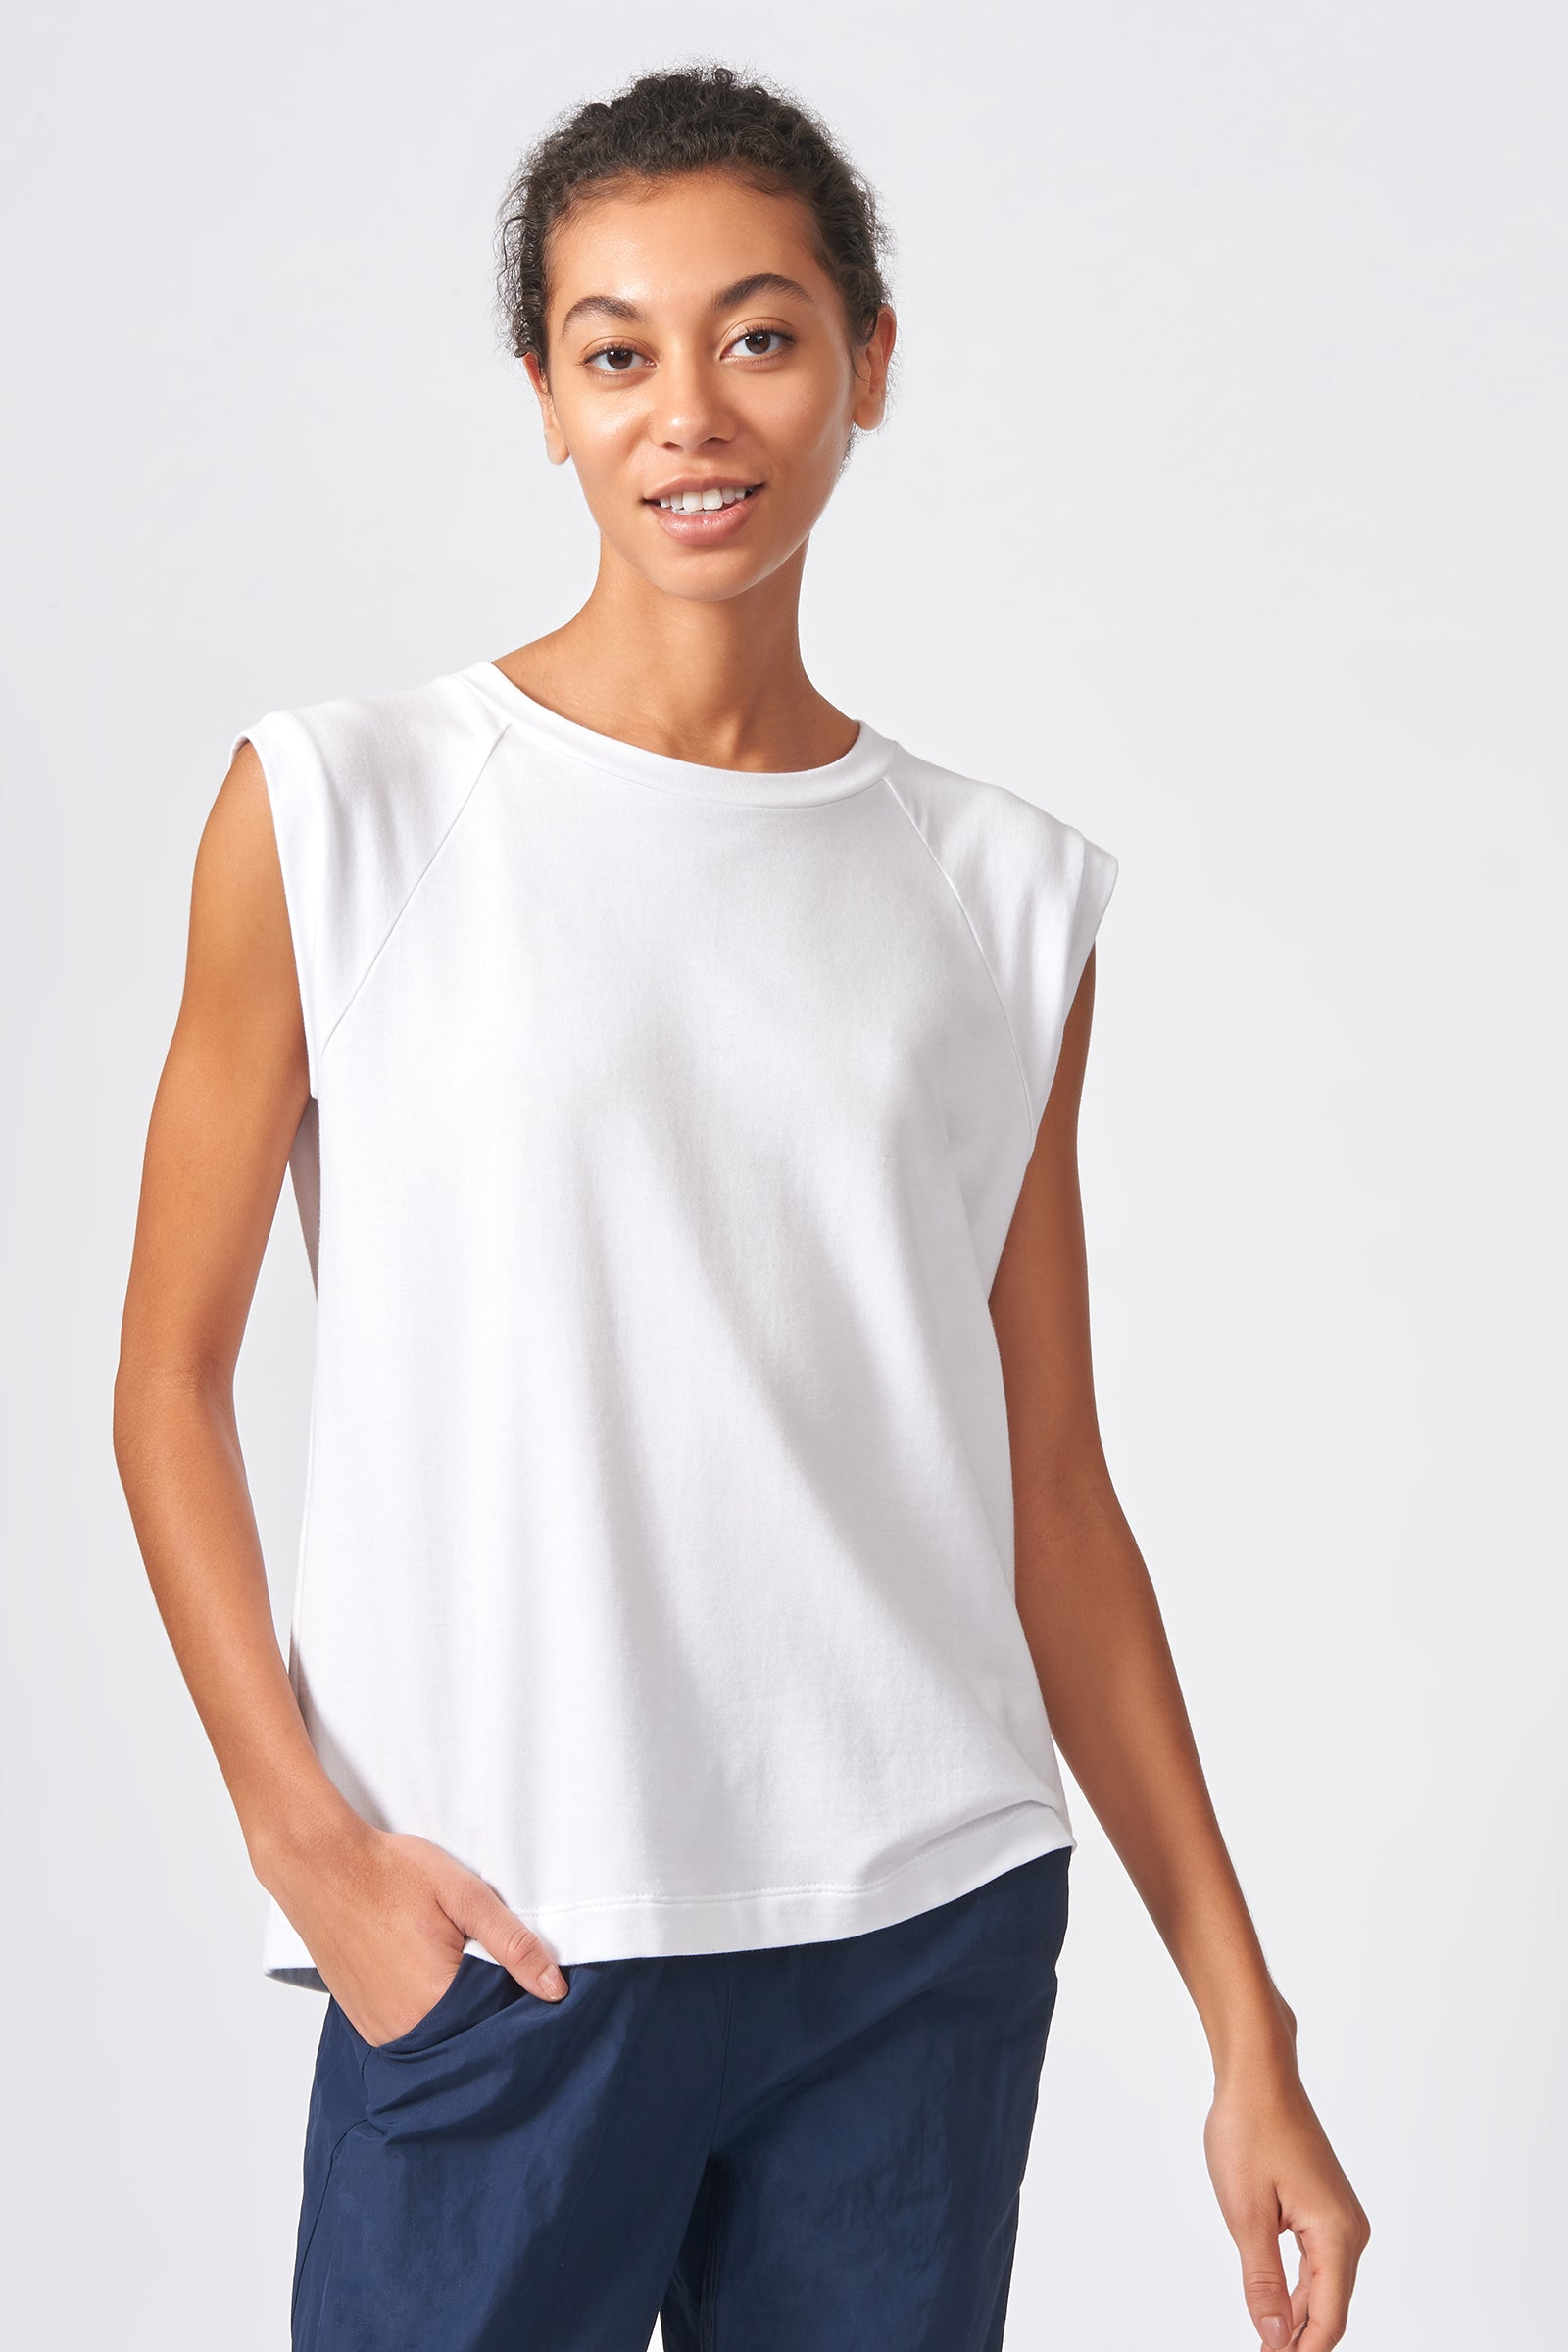 Kal Rieman Raglan Sweatshirt in White on Model Front View